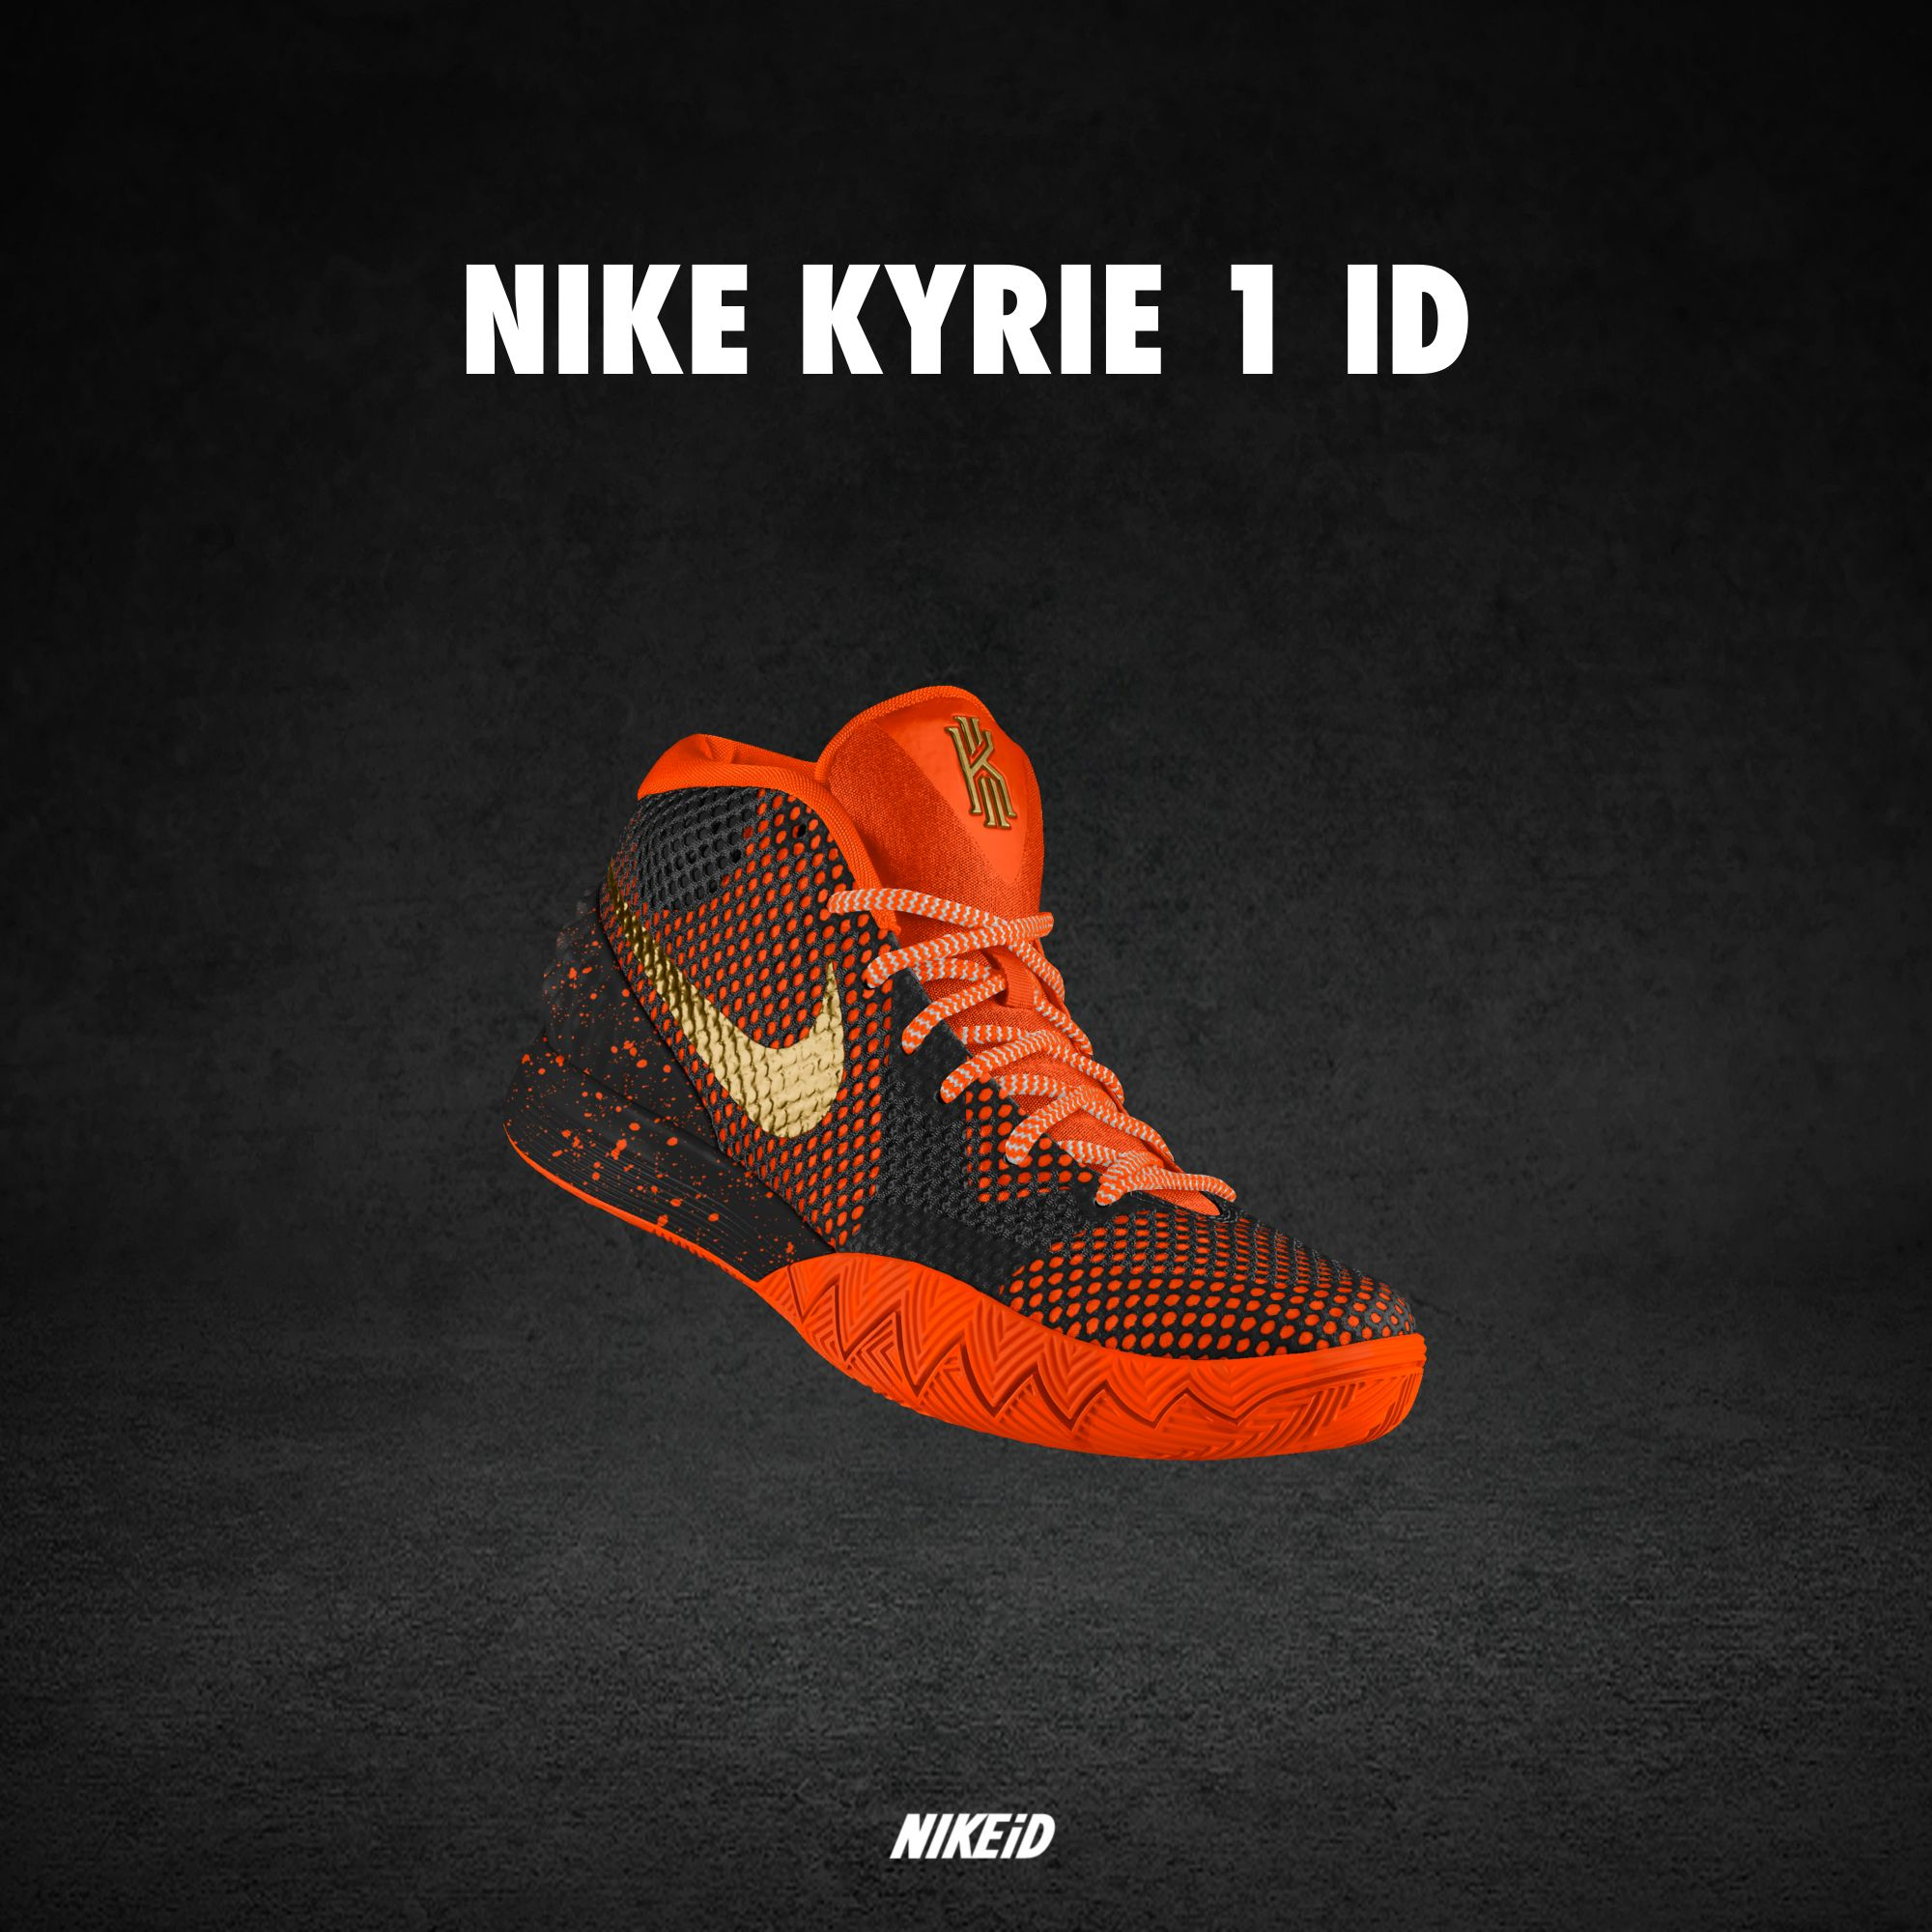 finest selection b7347 a588f Nike Kyrie 1 iD - Available Now - WearTesters